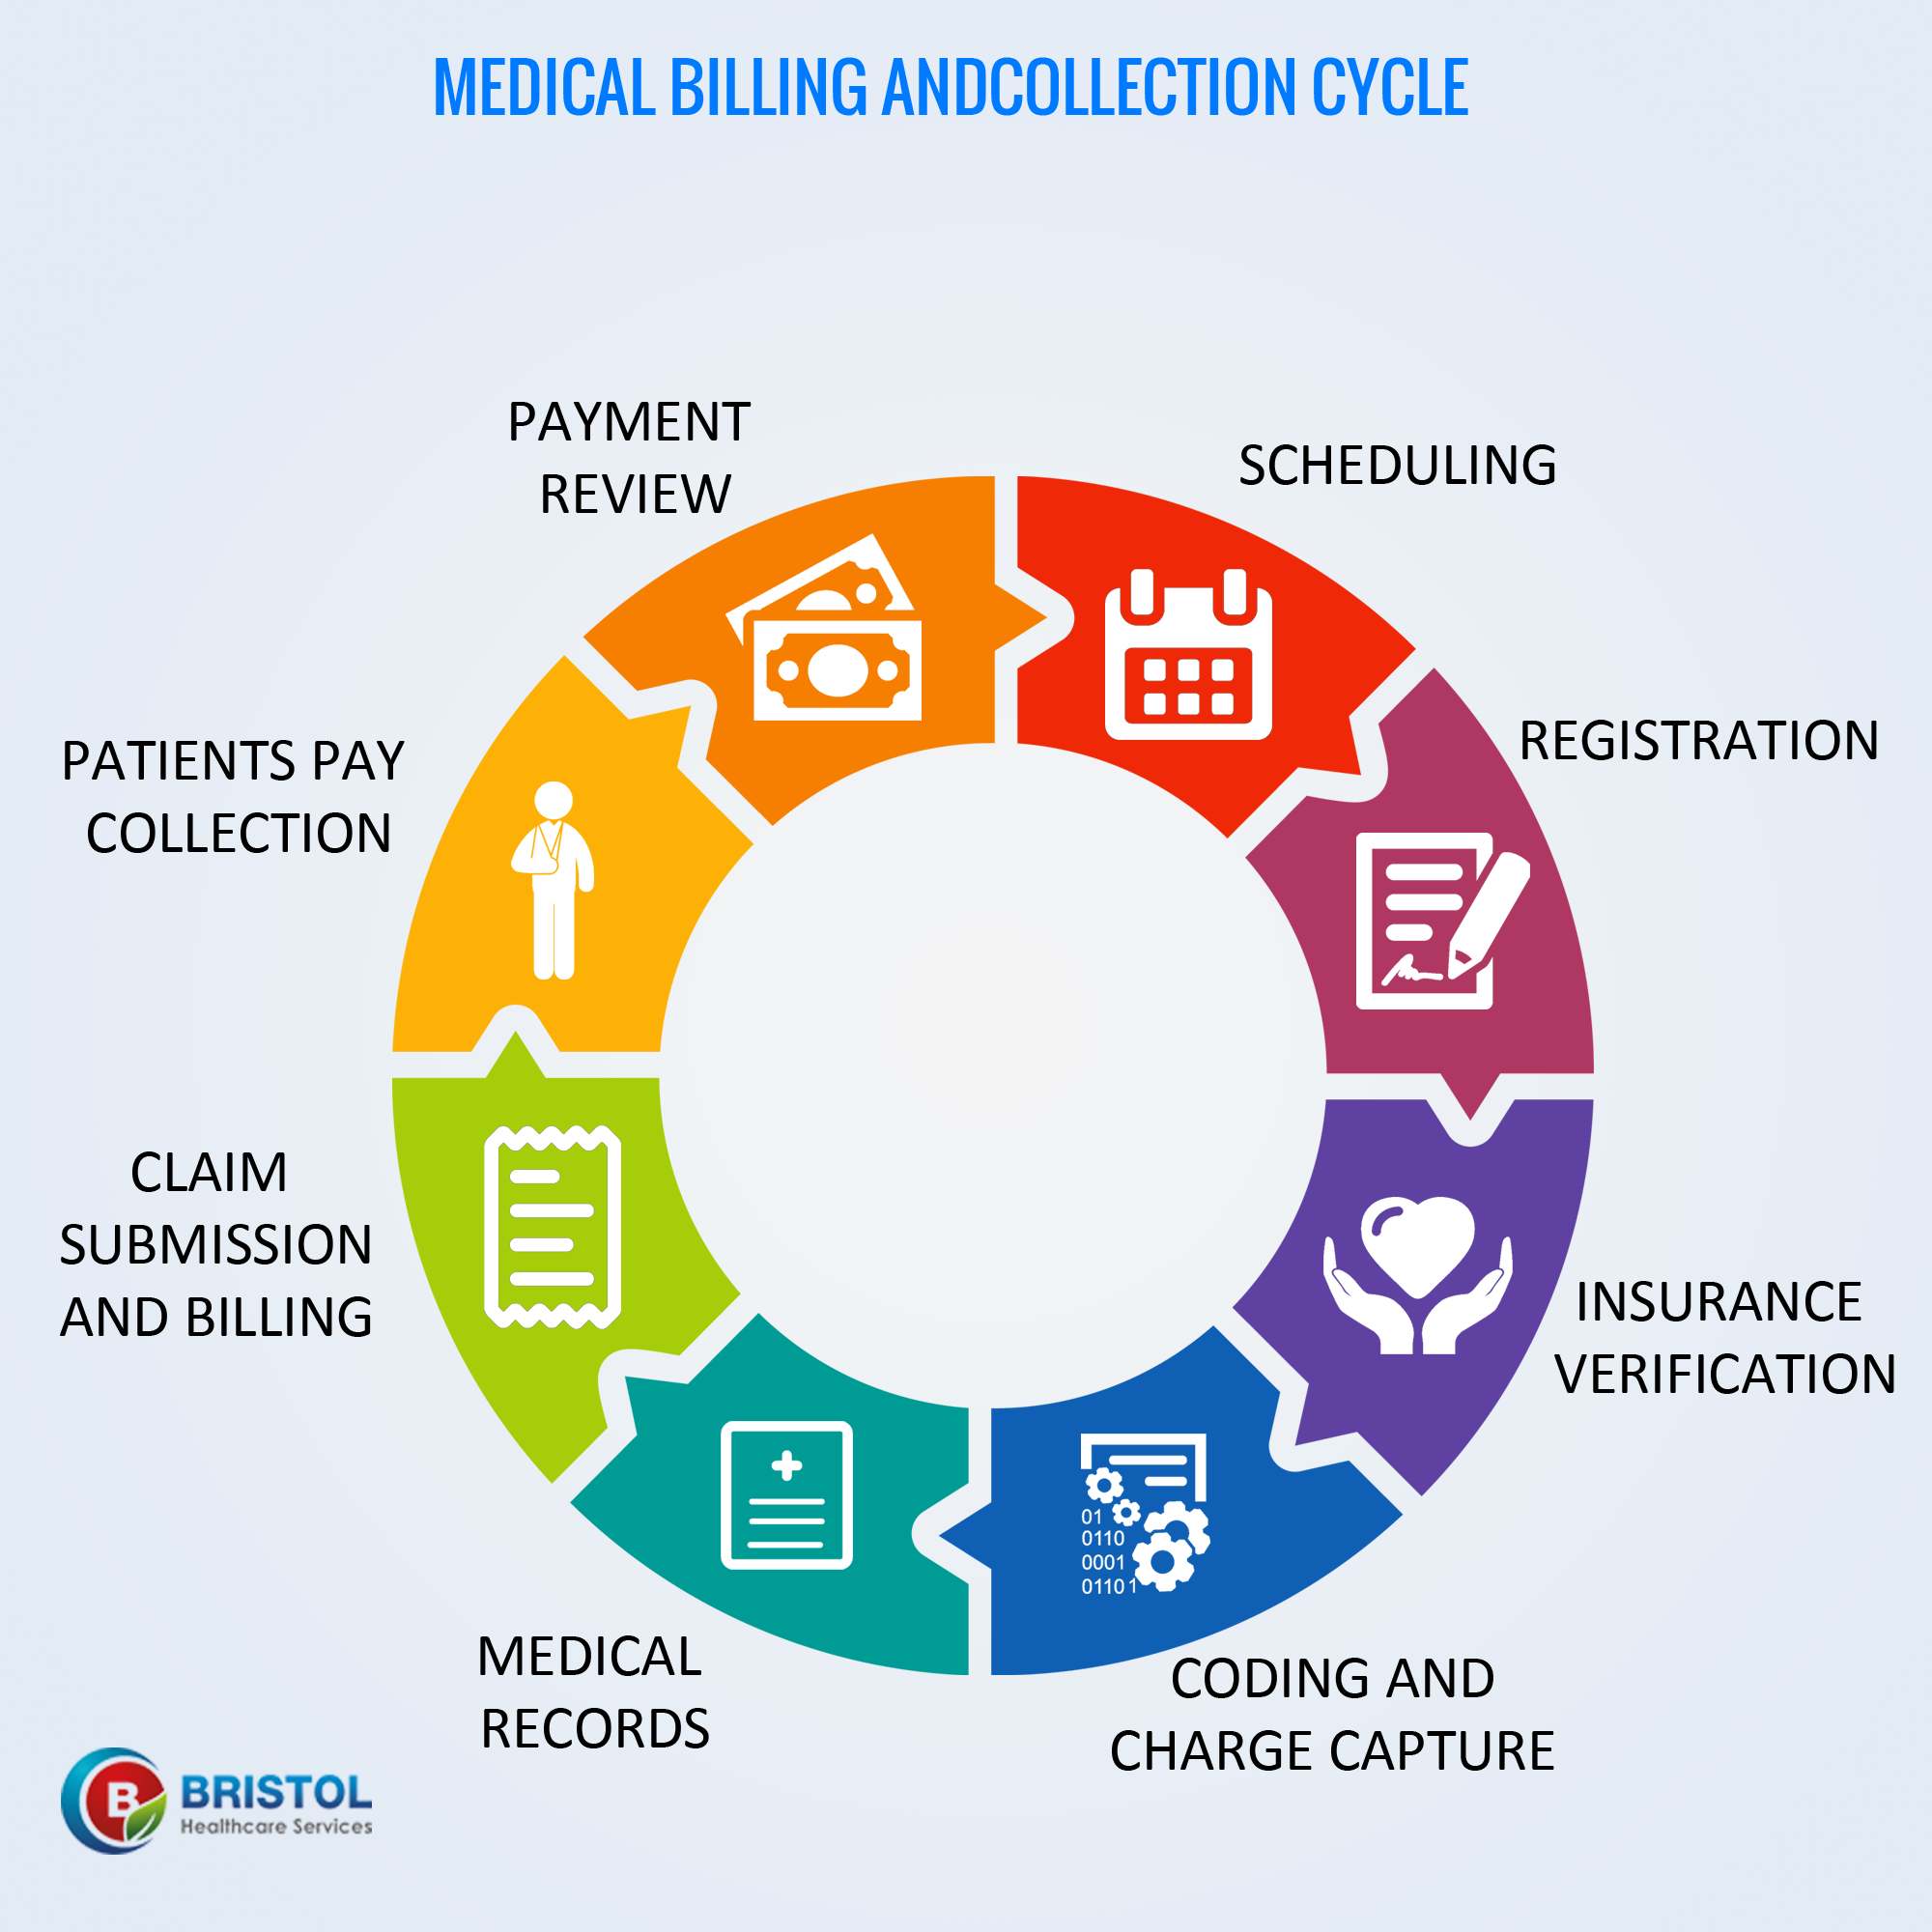 Bristol Healthcare Services Has An Effective Medical Billing And